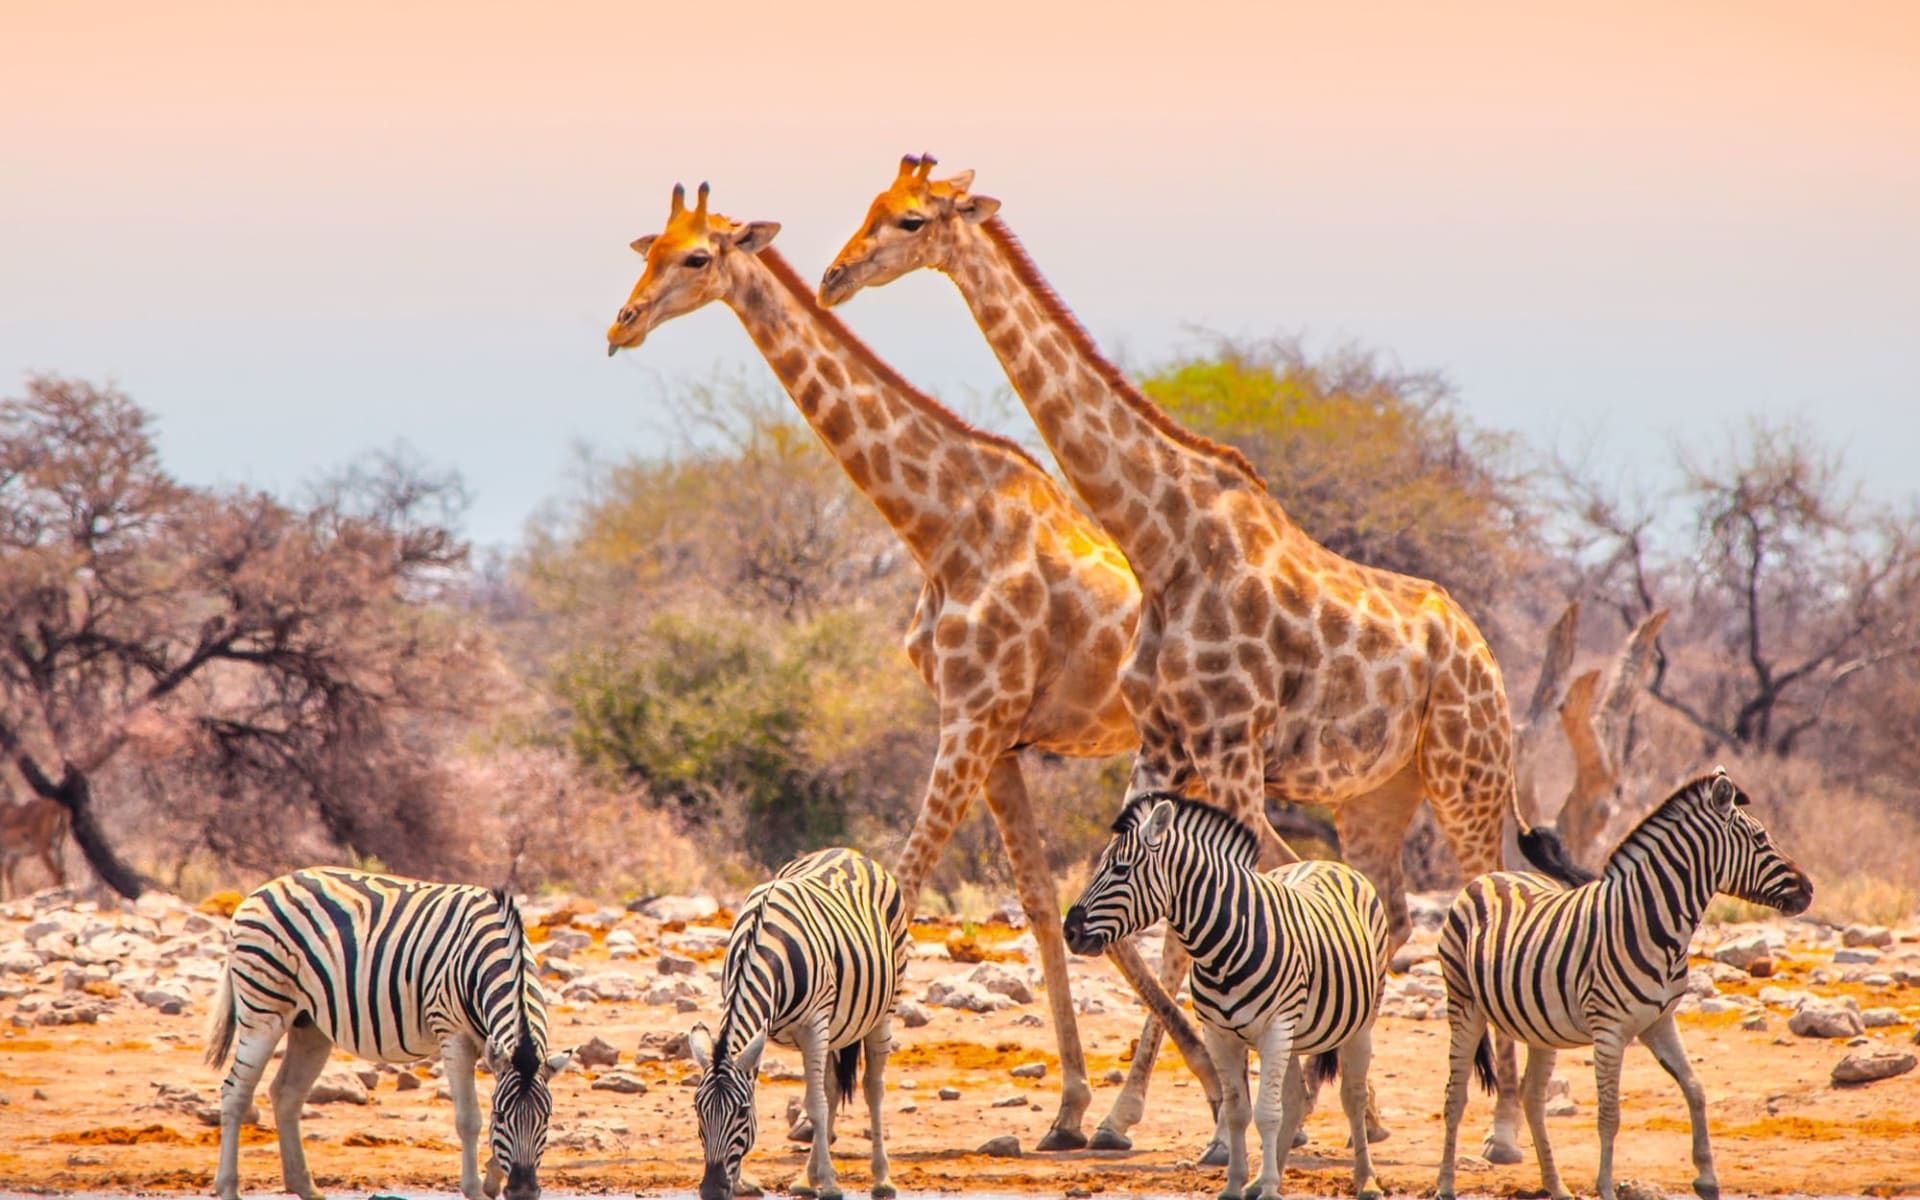 The Mushara Outpost in Etosha Nationalpark: tier Namibia entdecken - Giraffen am Wasserloch c